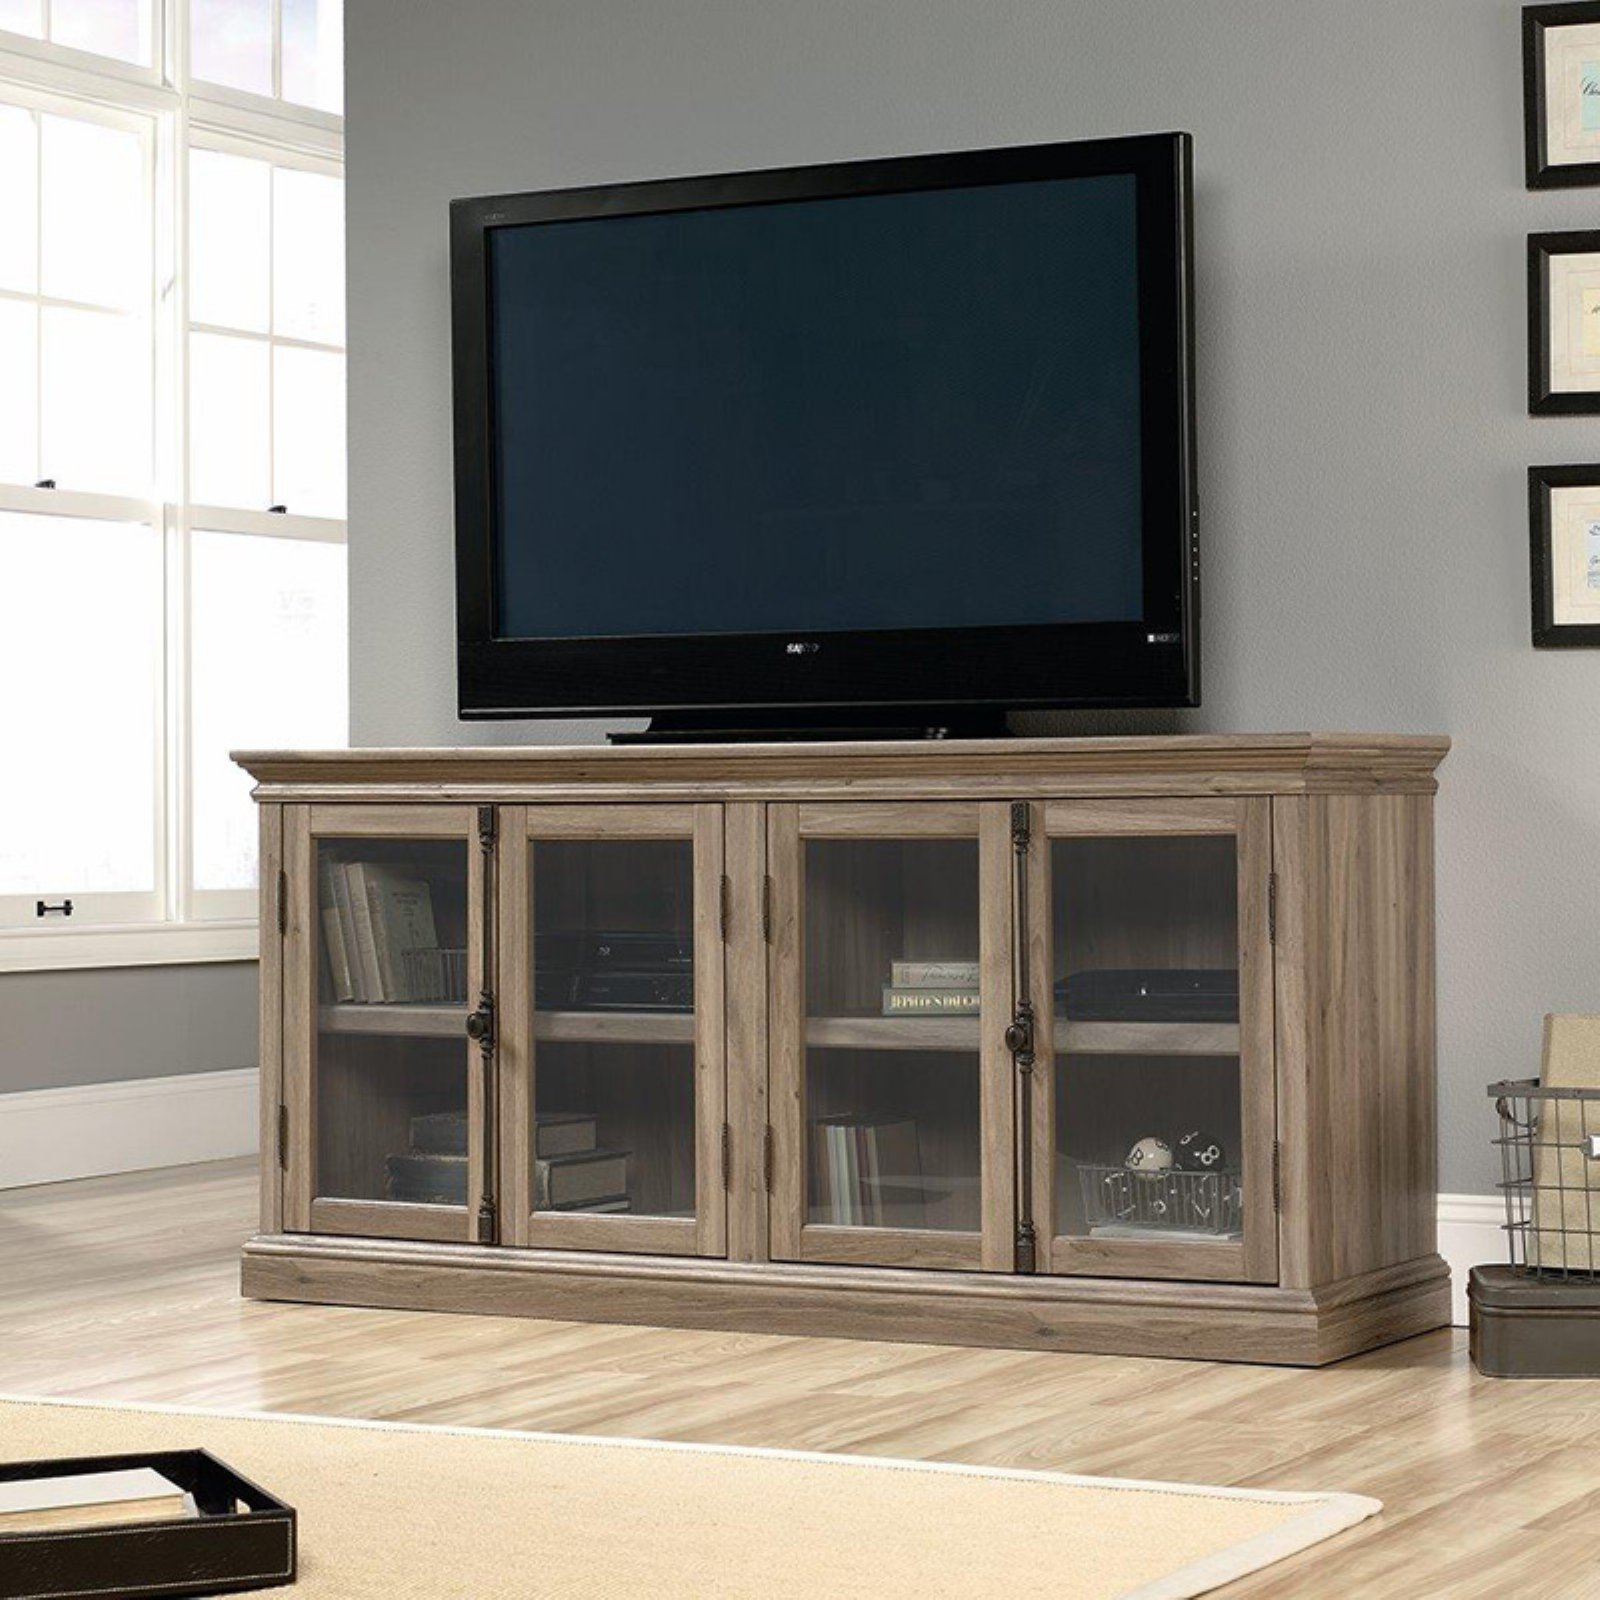 Sauder Barrister Lane Storage Credenza TV Stand Salt Oak by Sauder